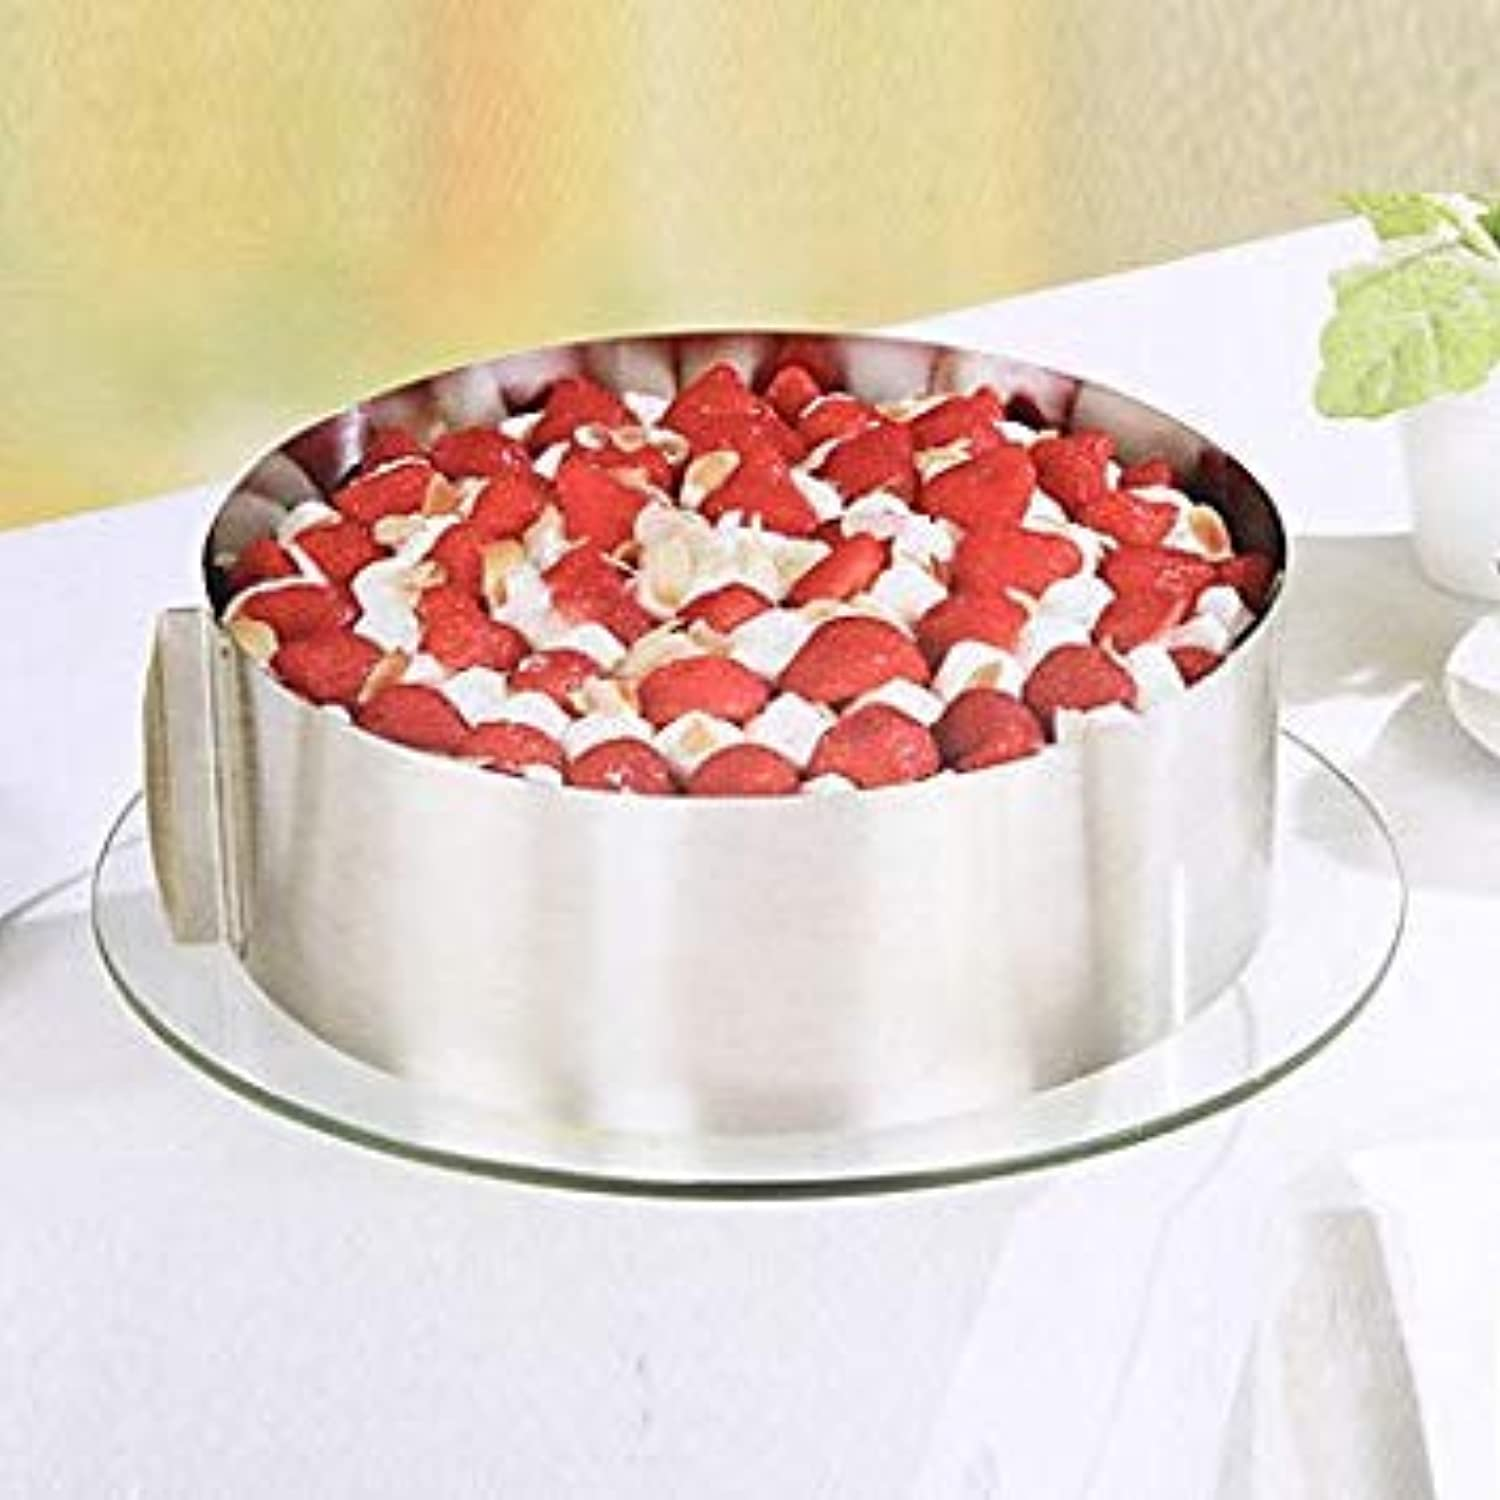 Stainless Steel Circle of Mousse Cake Every Circular Mould 6 Inch and 12 Inch Baking Tools Can Be Adjusted  04970821